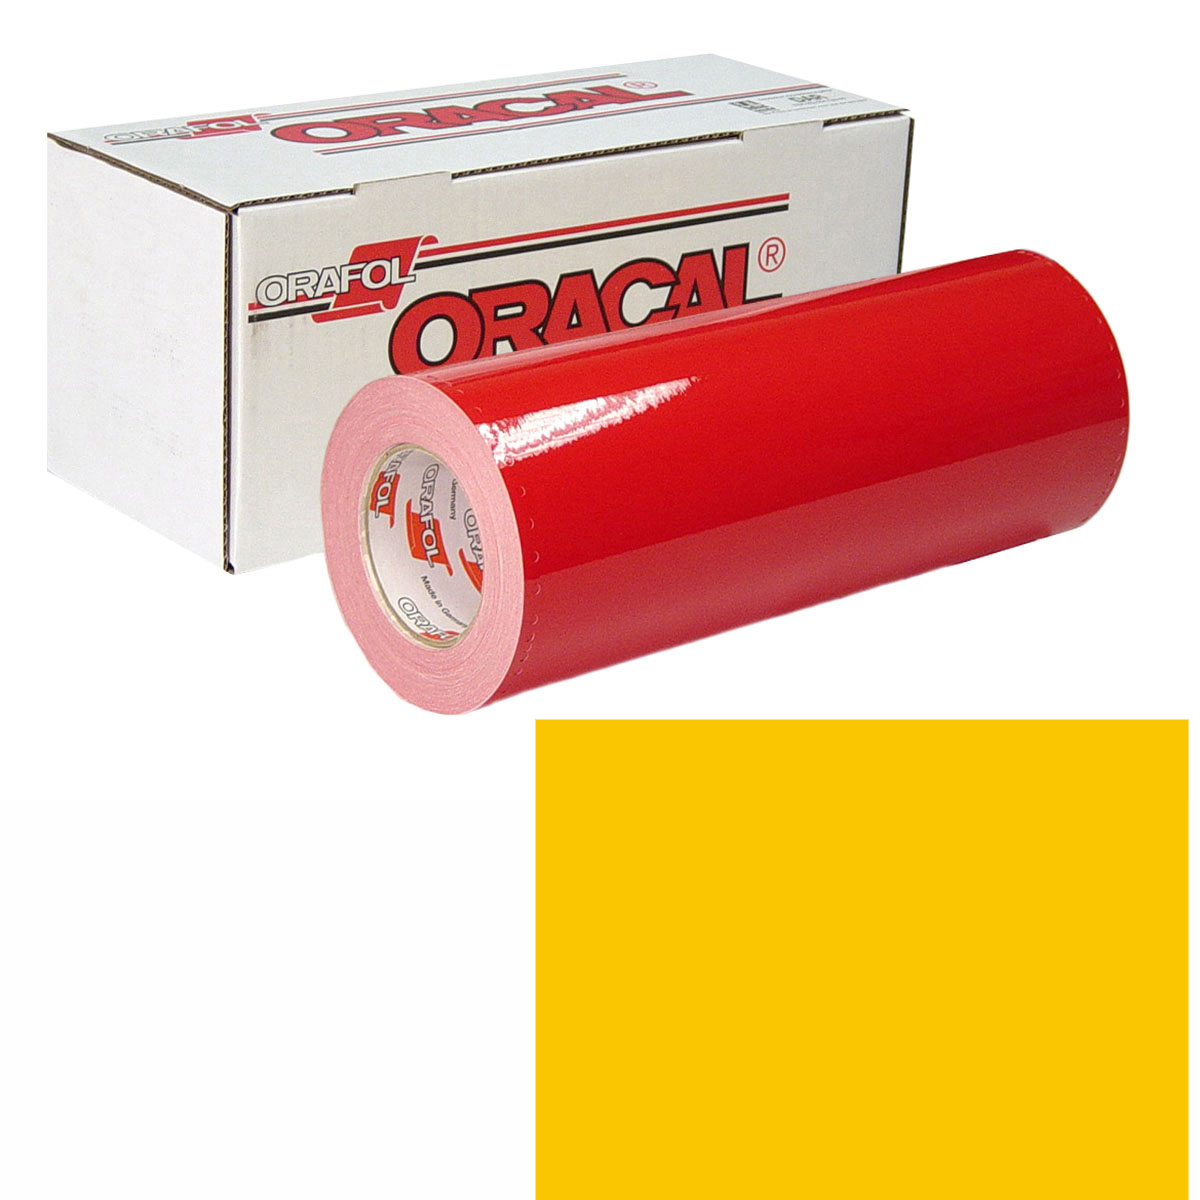 ORACAL 951 Unp 24In X 10Yd 216 Traffic Yellow